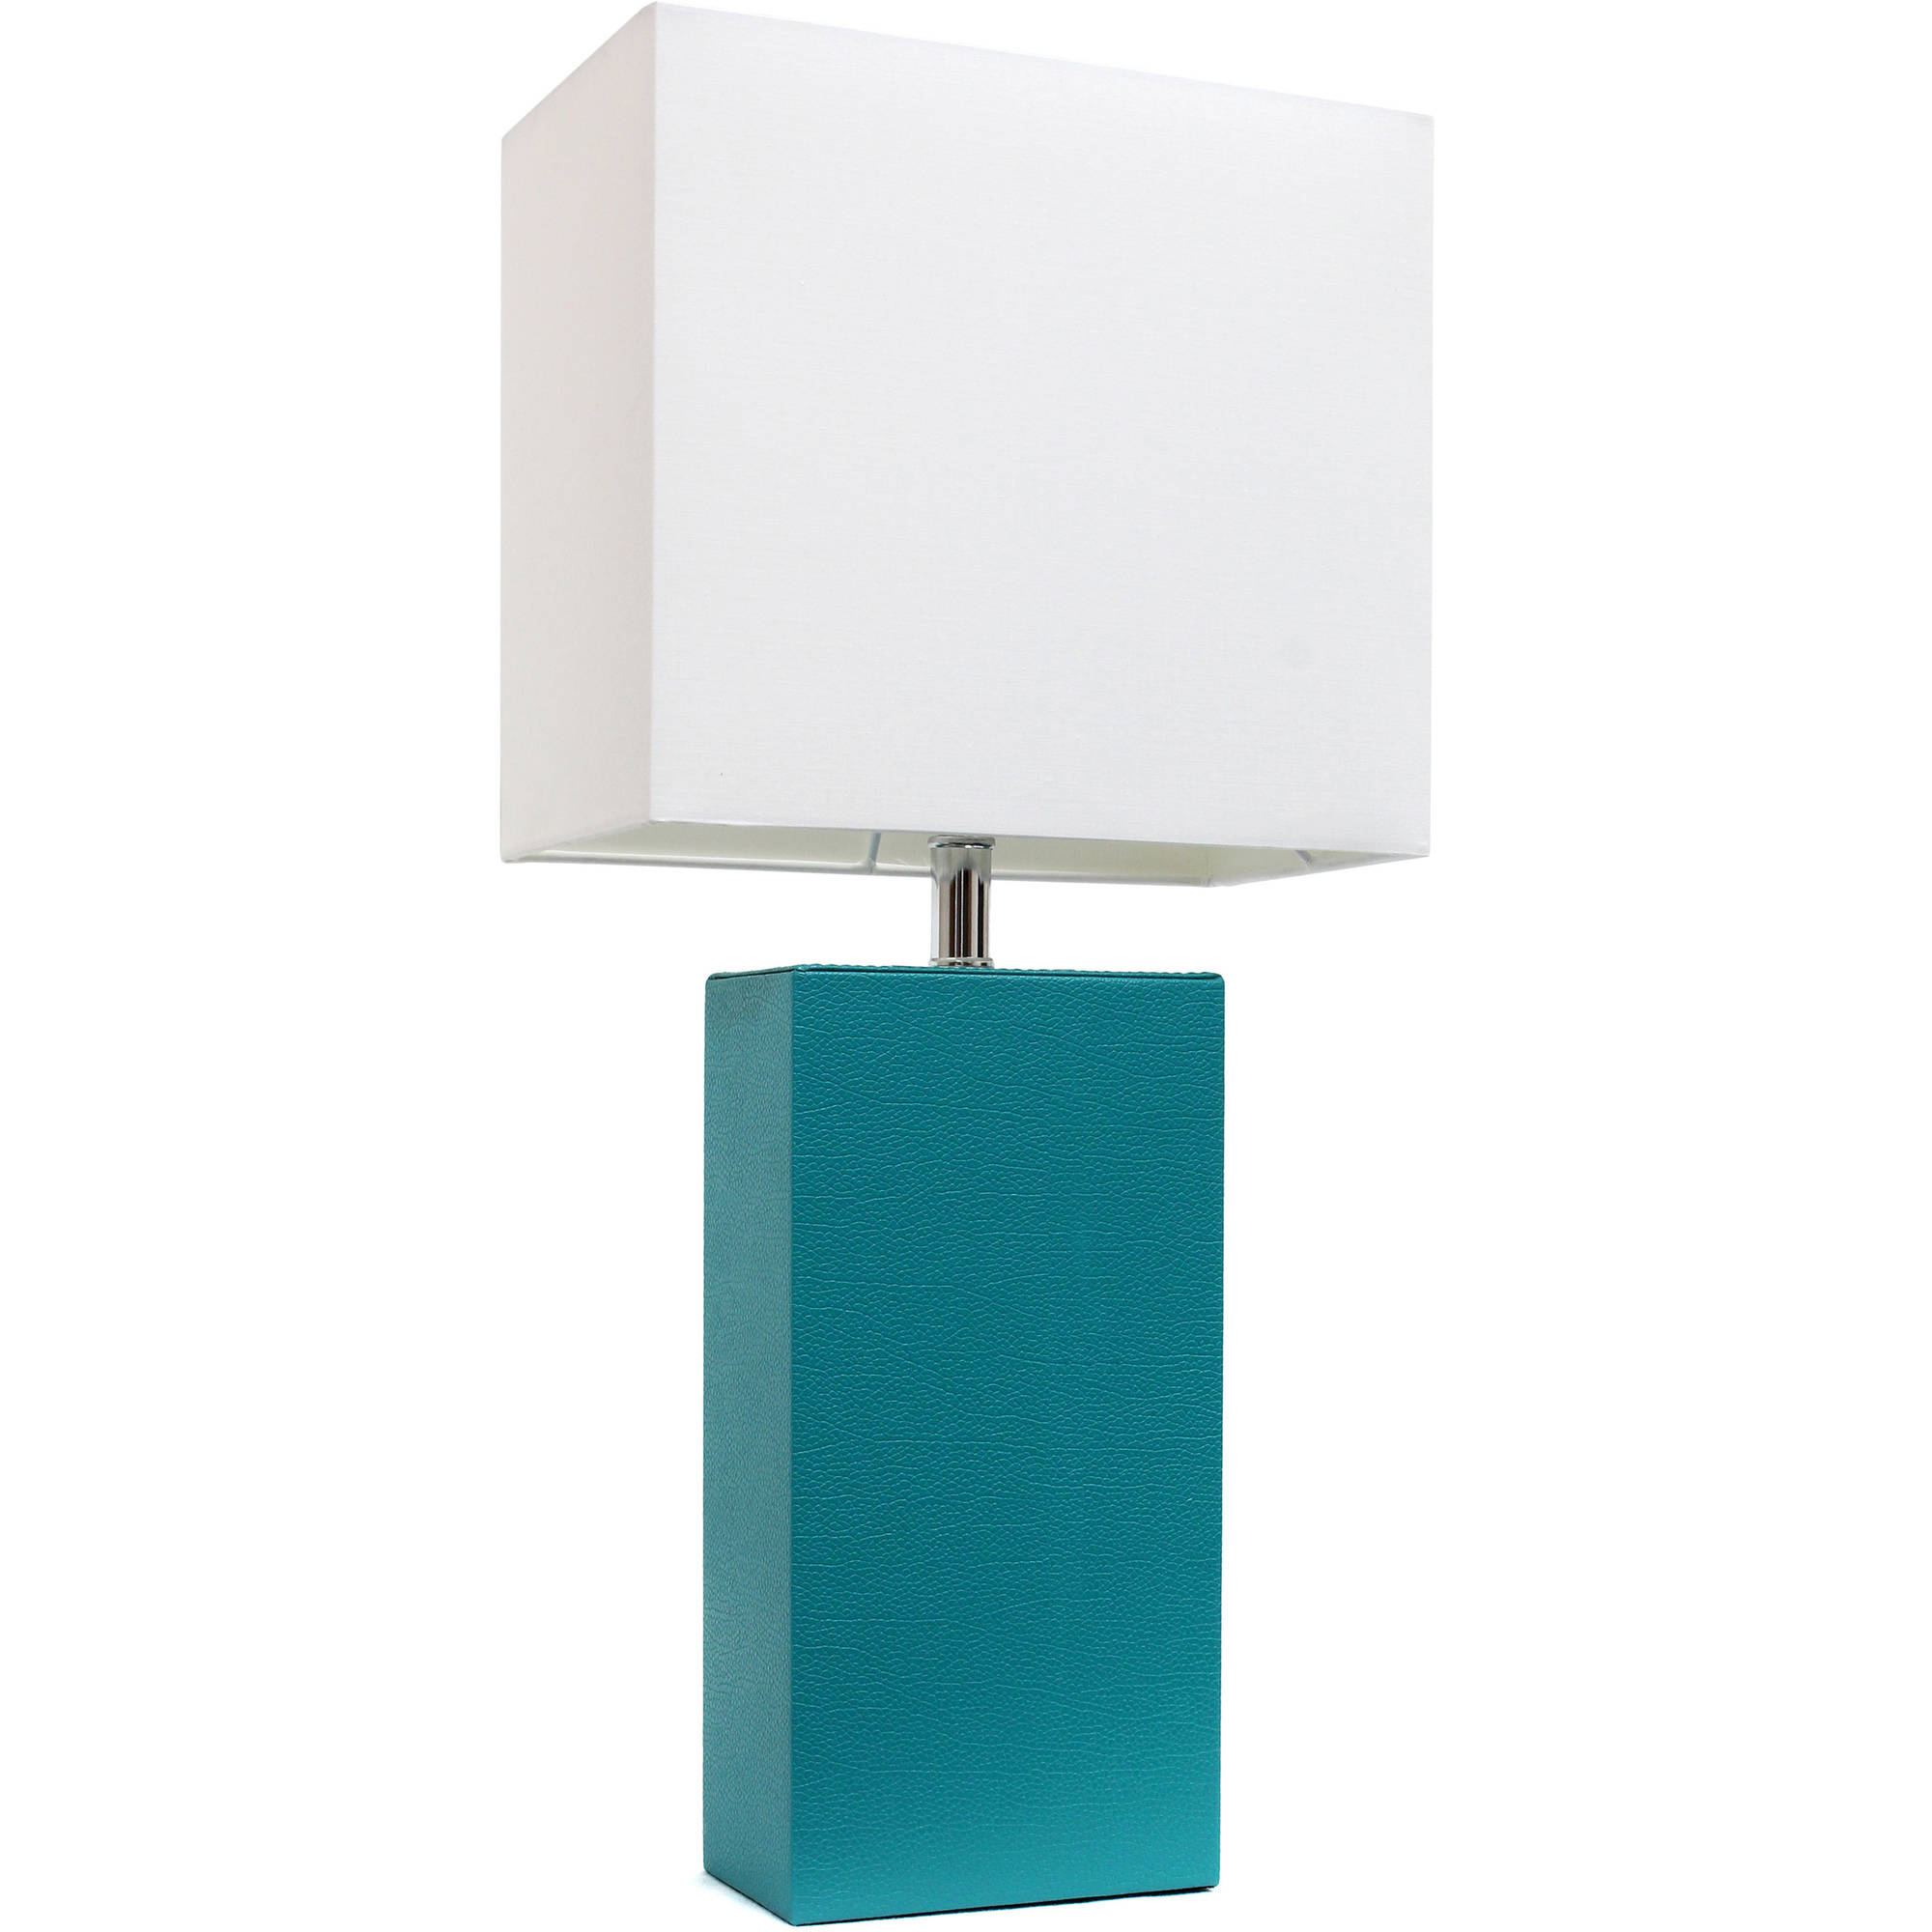 Elegant Designs Modern Leather Table Lamp with White Fabric Shade, Teal by All the Rages Inc